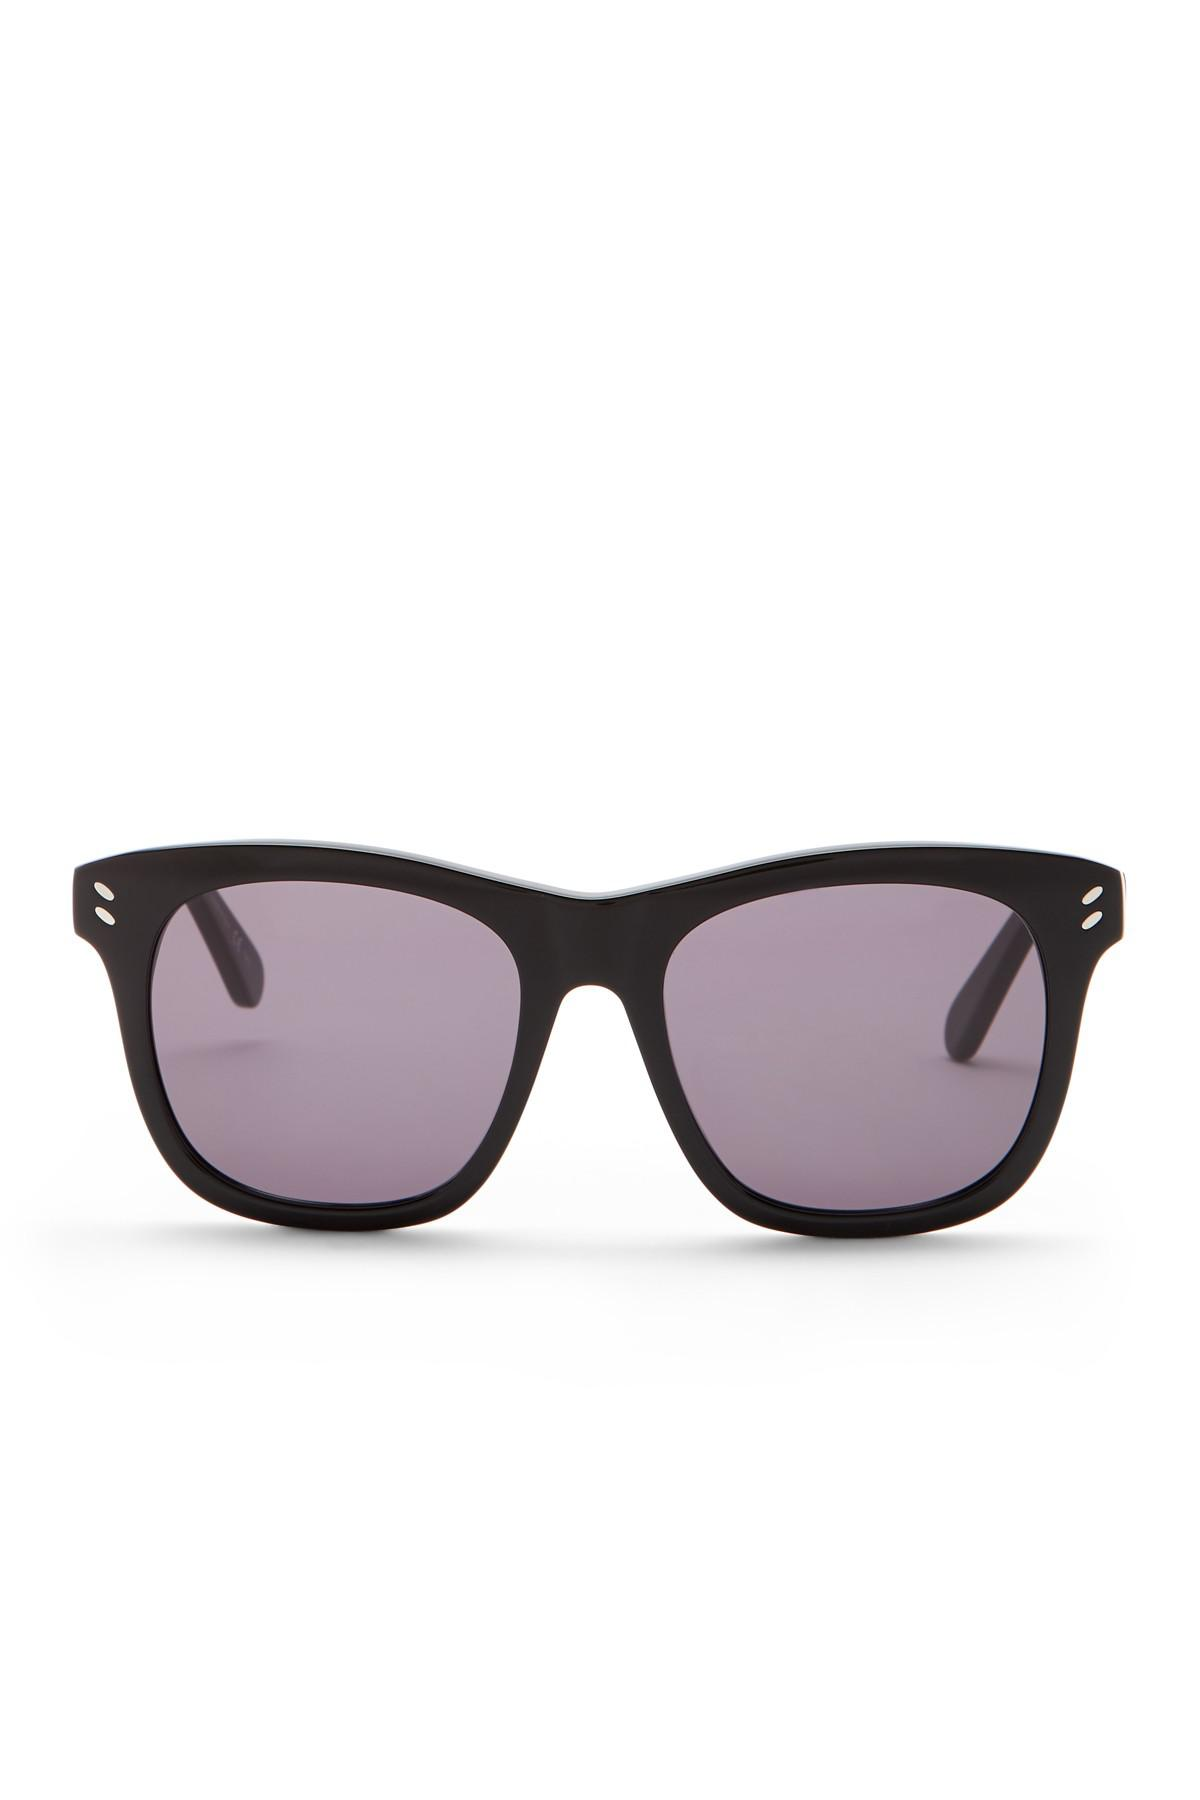 51f69dc8fde5 Stella McCartney - Black 52mm Square Sunglasses - Lyst. View fullscreen